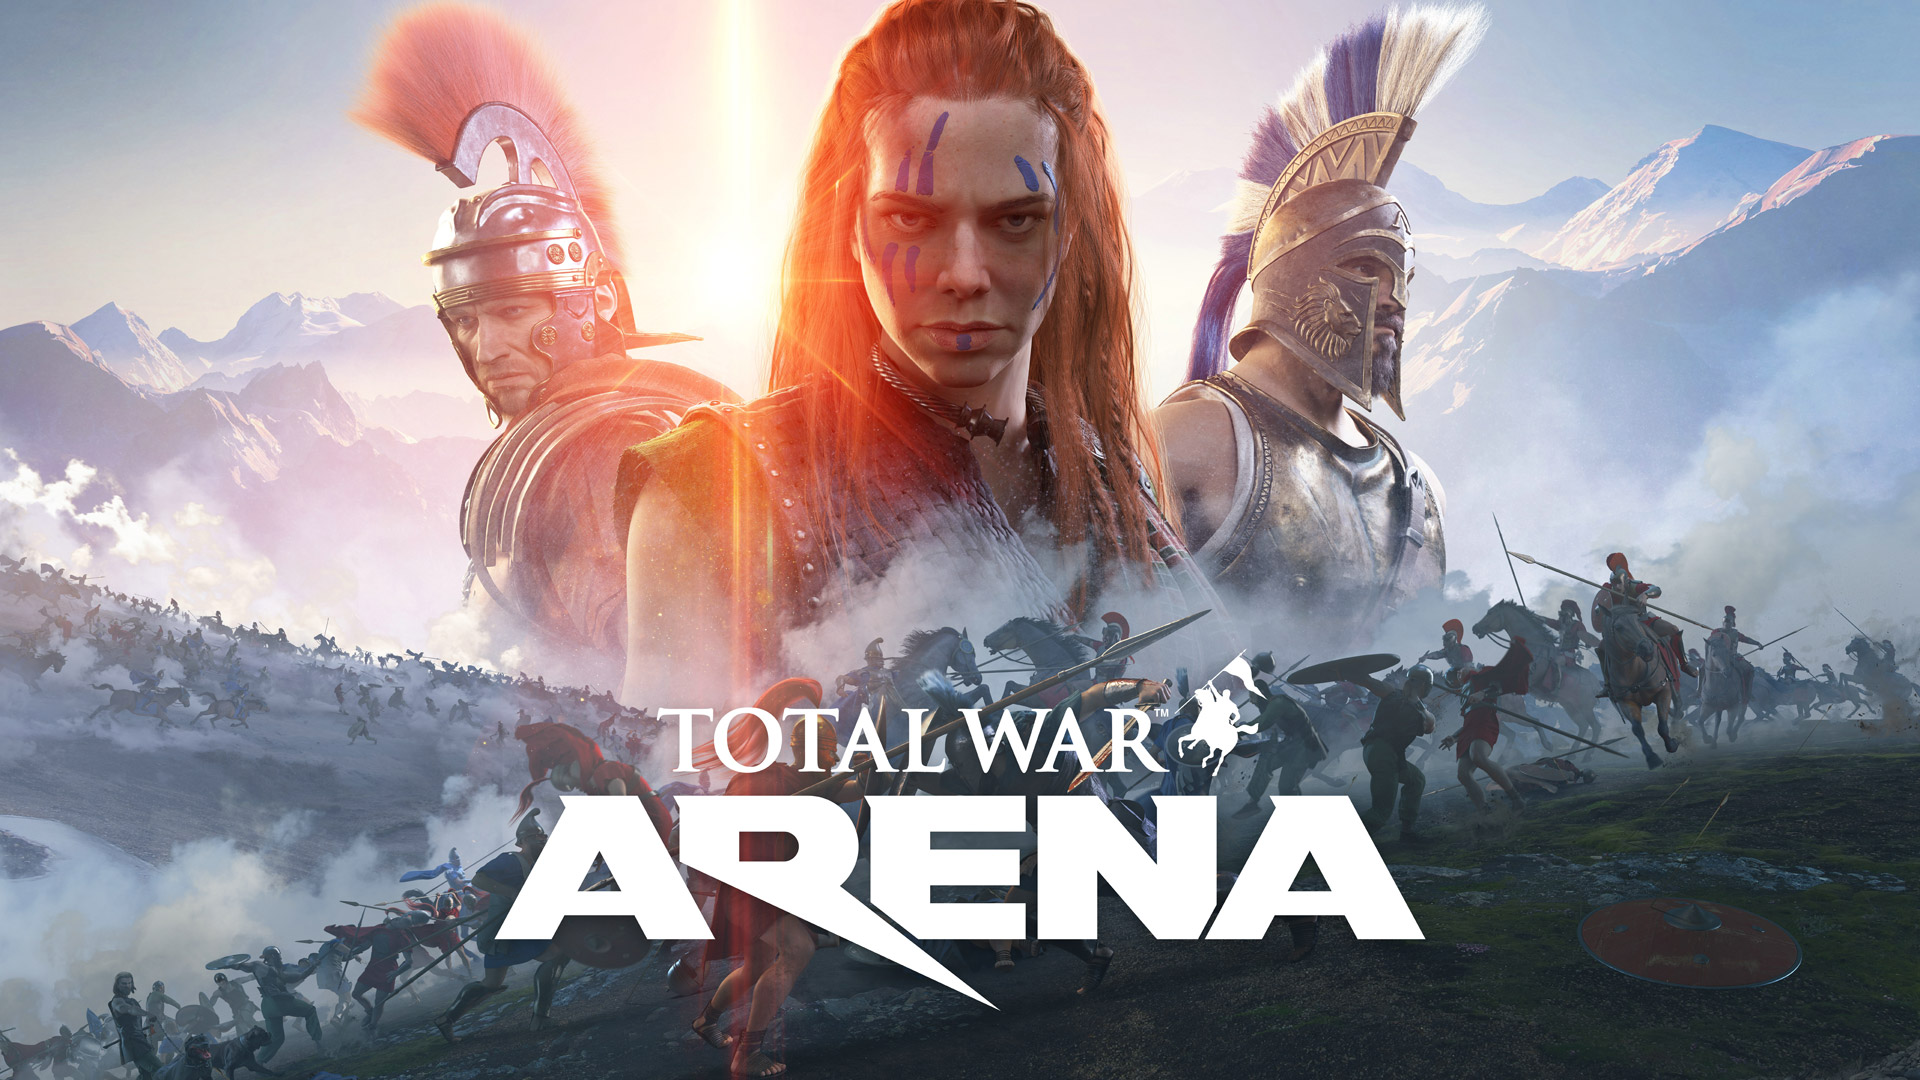 Free Total War: Arena Wallpaper in 1920x1080